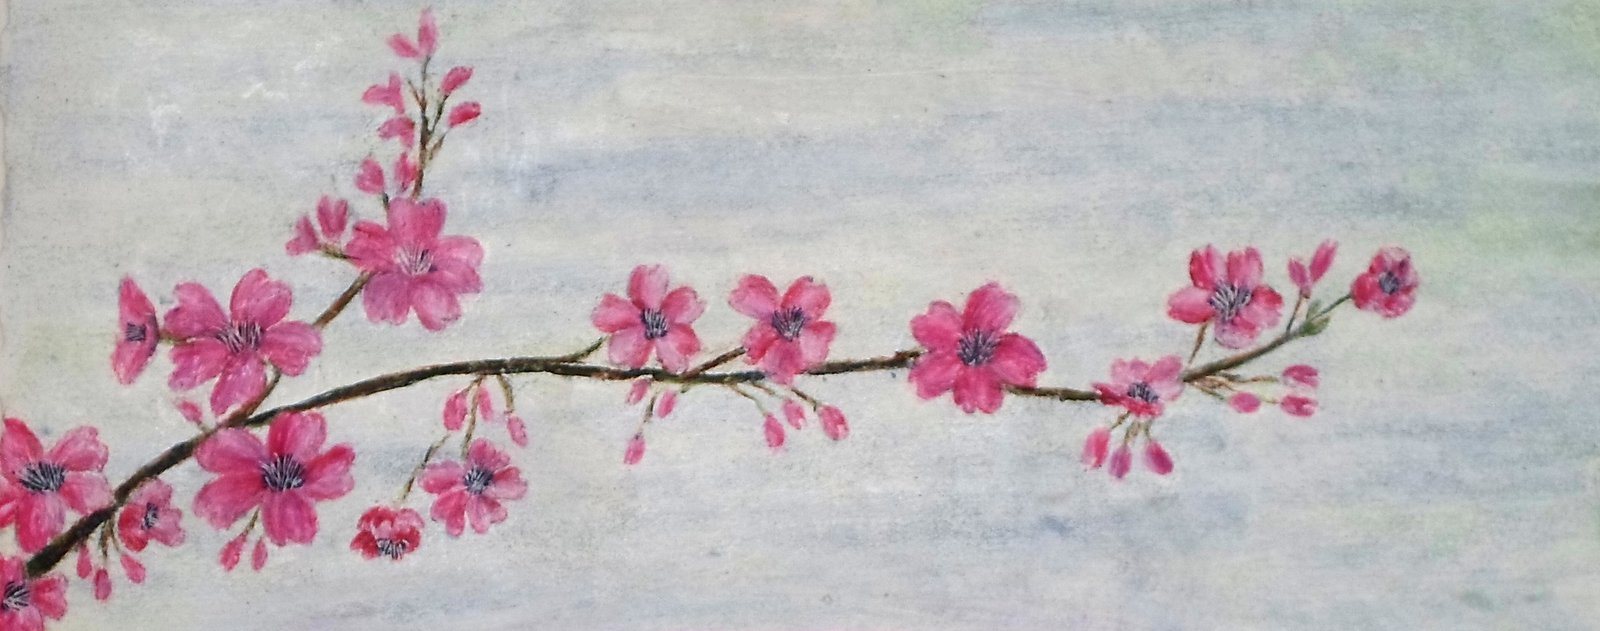 Cherry Blossoms - detail from Berries, Blossoms, Branches painting by contemporary Irish artist Mary Wallace